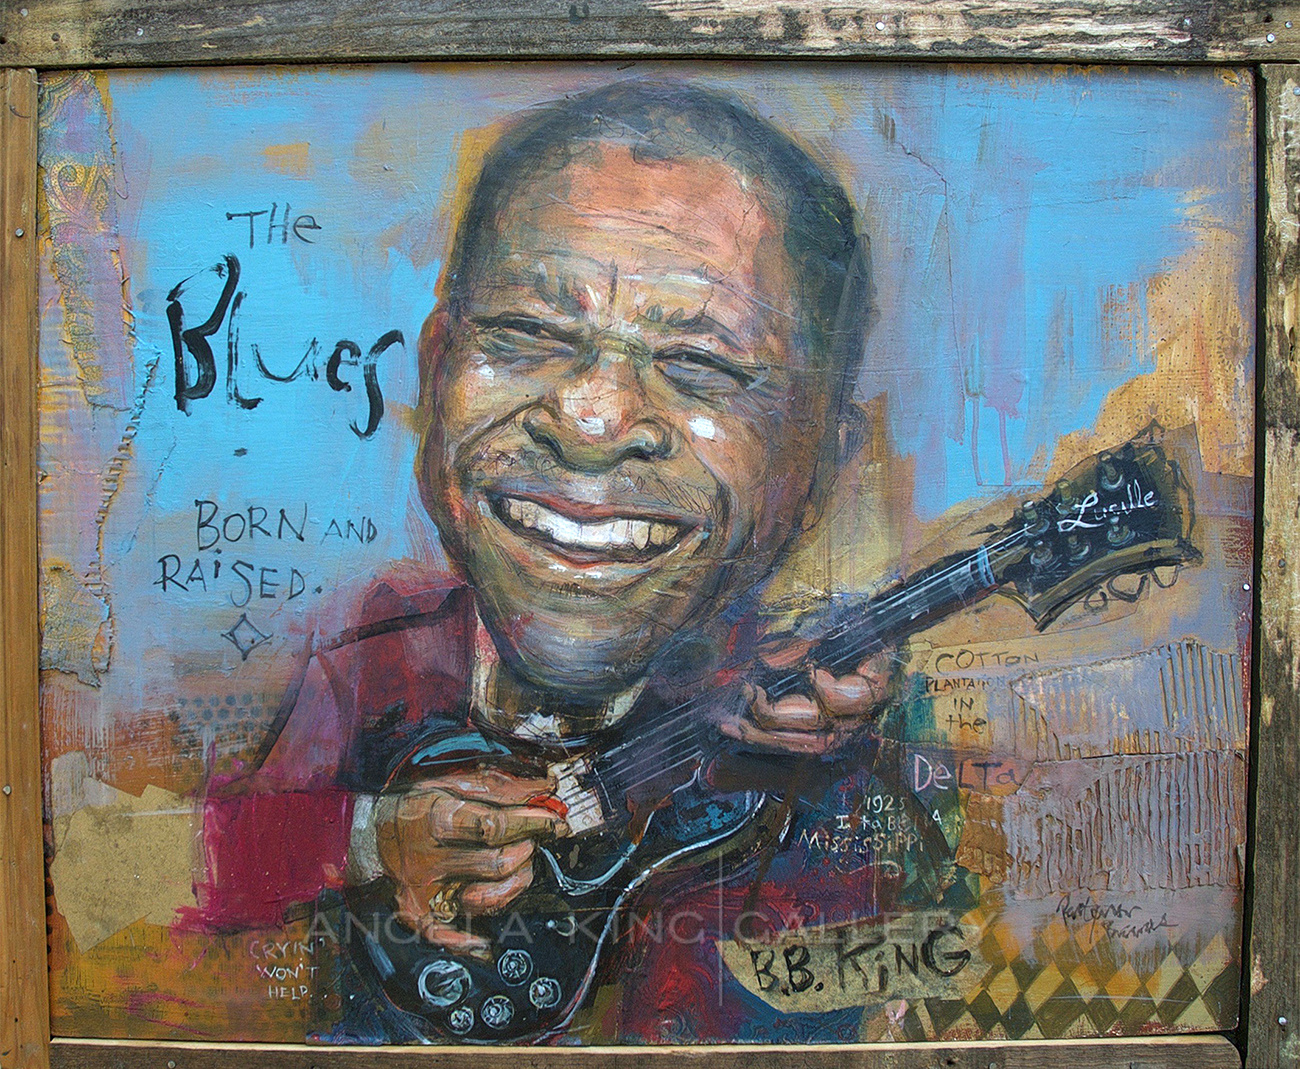 BB King The Blues Born and Raised